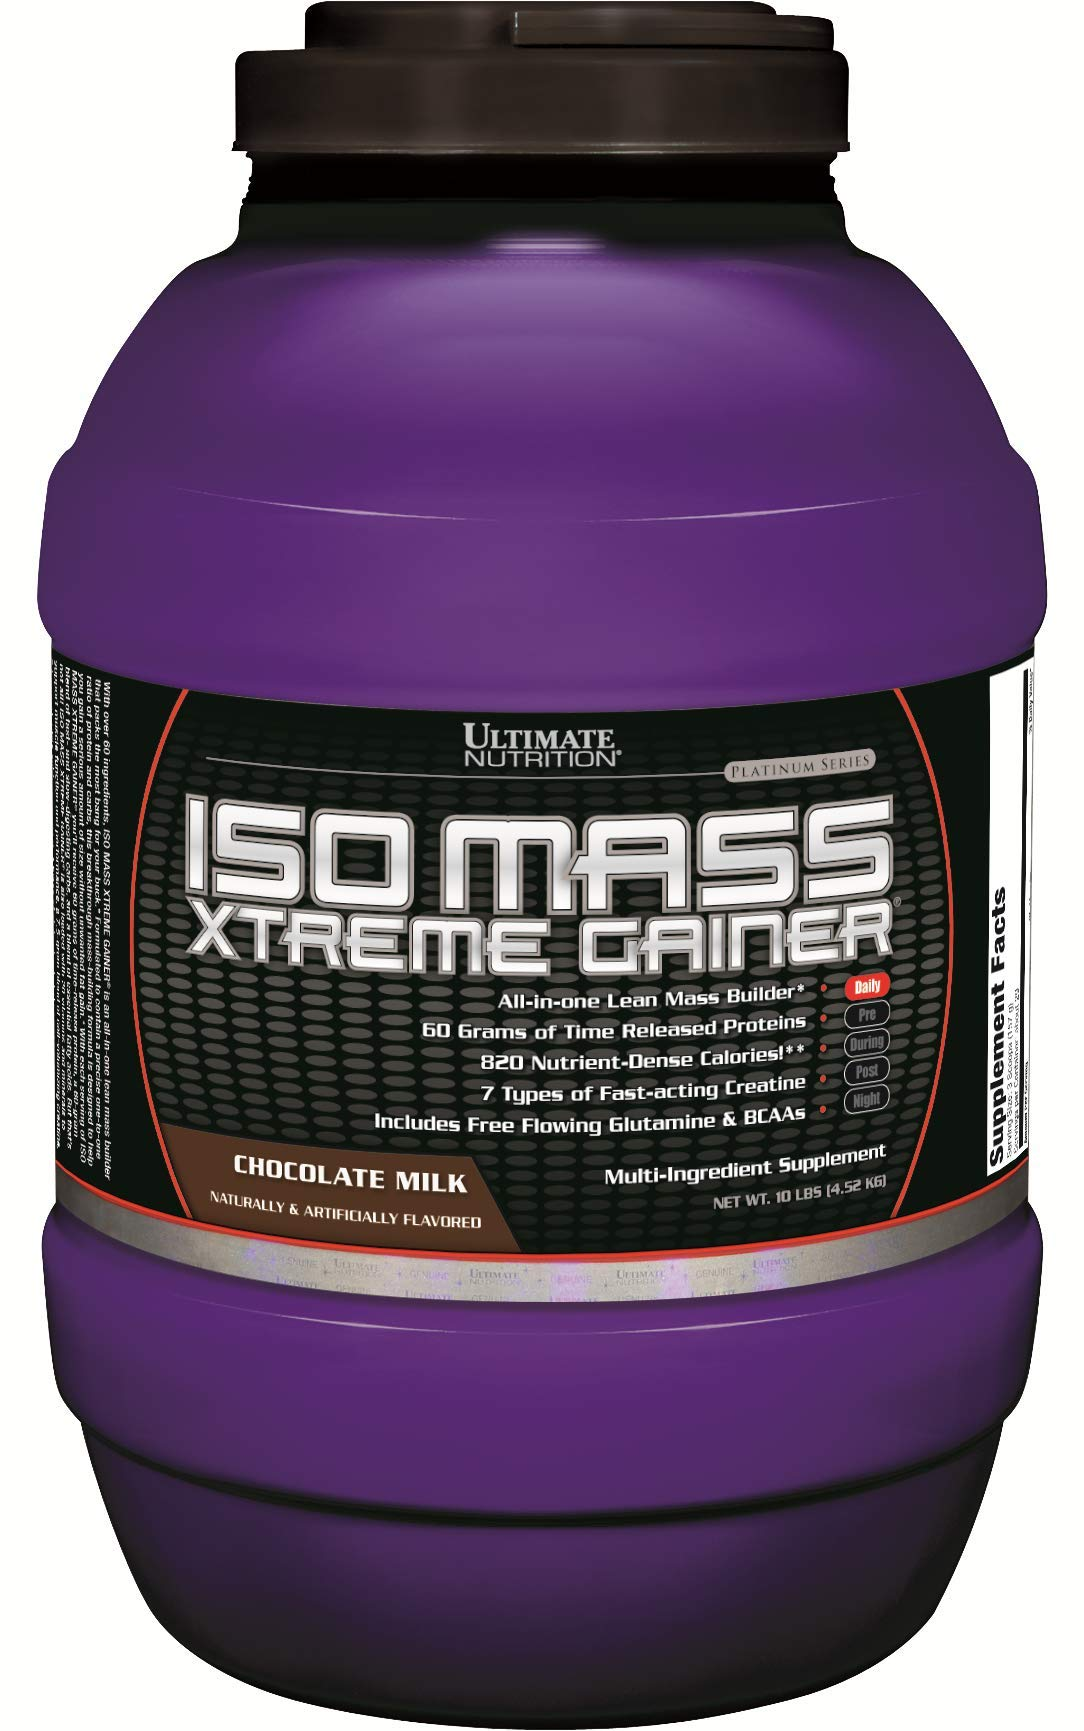 Ultimate Nutrition Iso Mass Xtreme Gainer Serious Weight and Lean Muscle Mass Protein Powder, Chocolate, 30 Servings